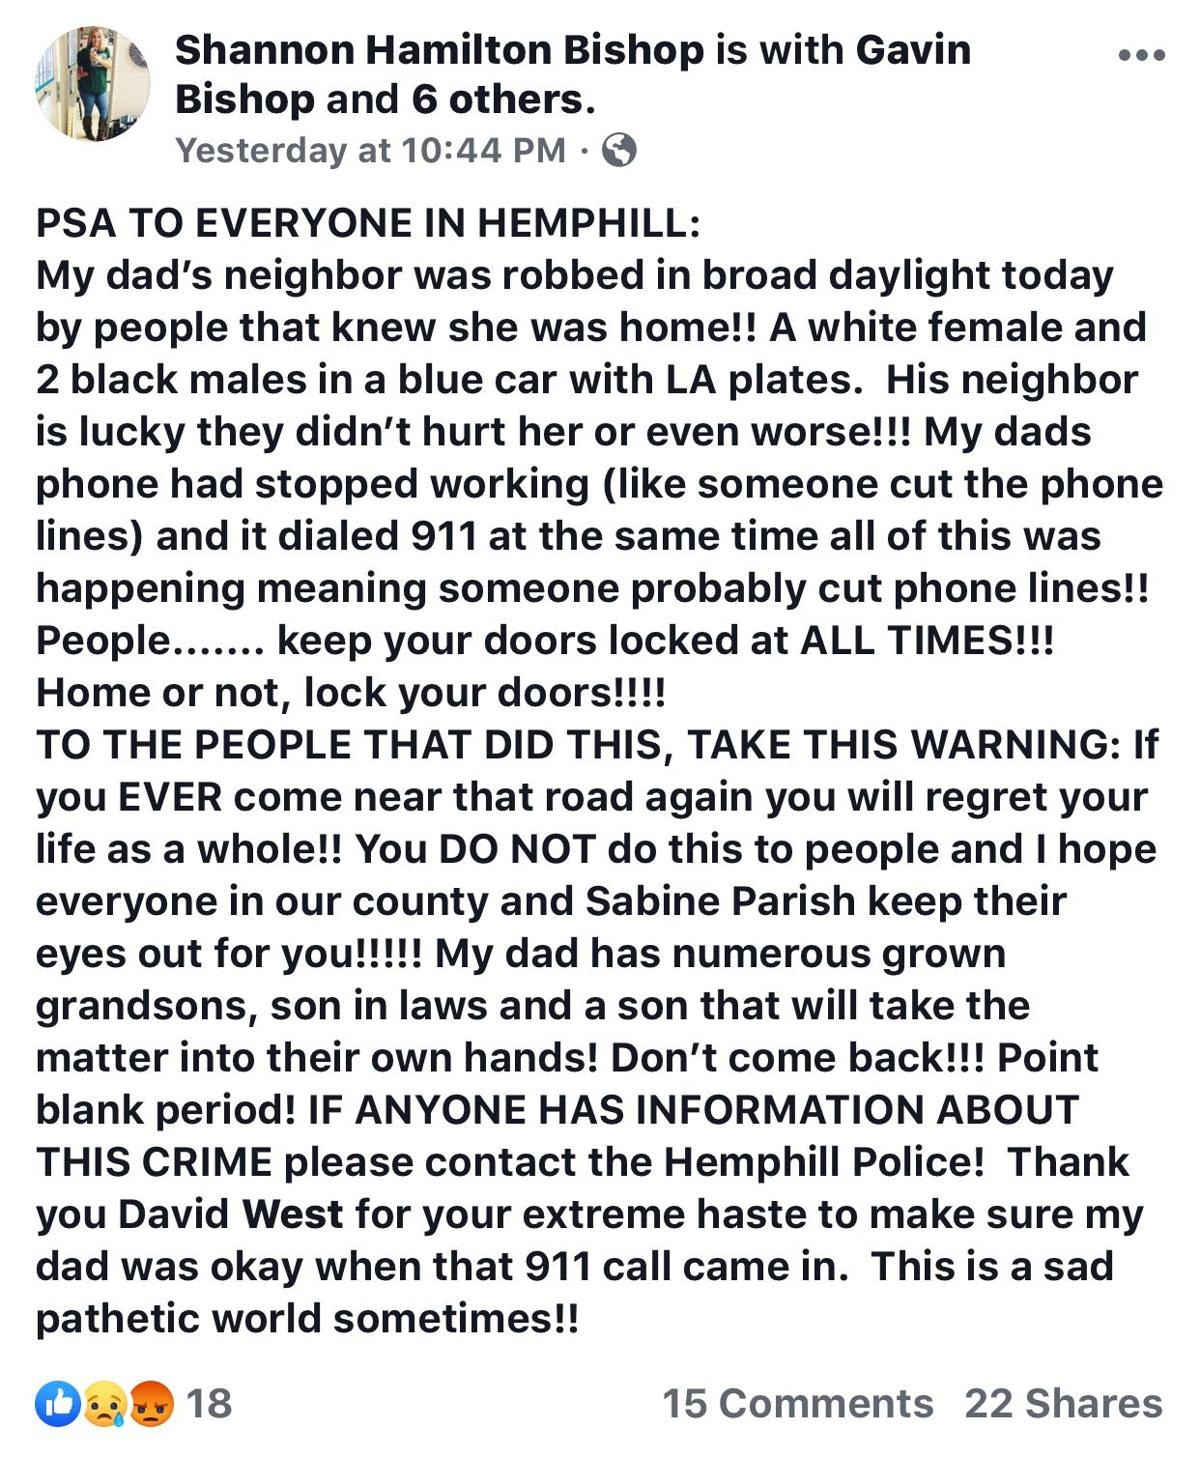 Home robbery report in Hemphill spreads across social media overnight, the second in Sabine County this month